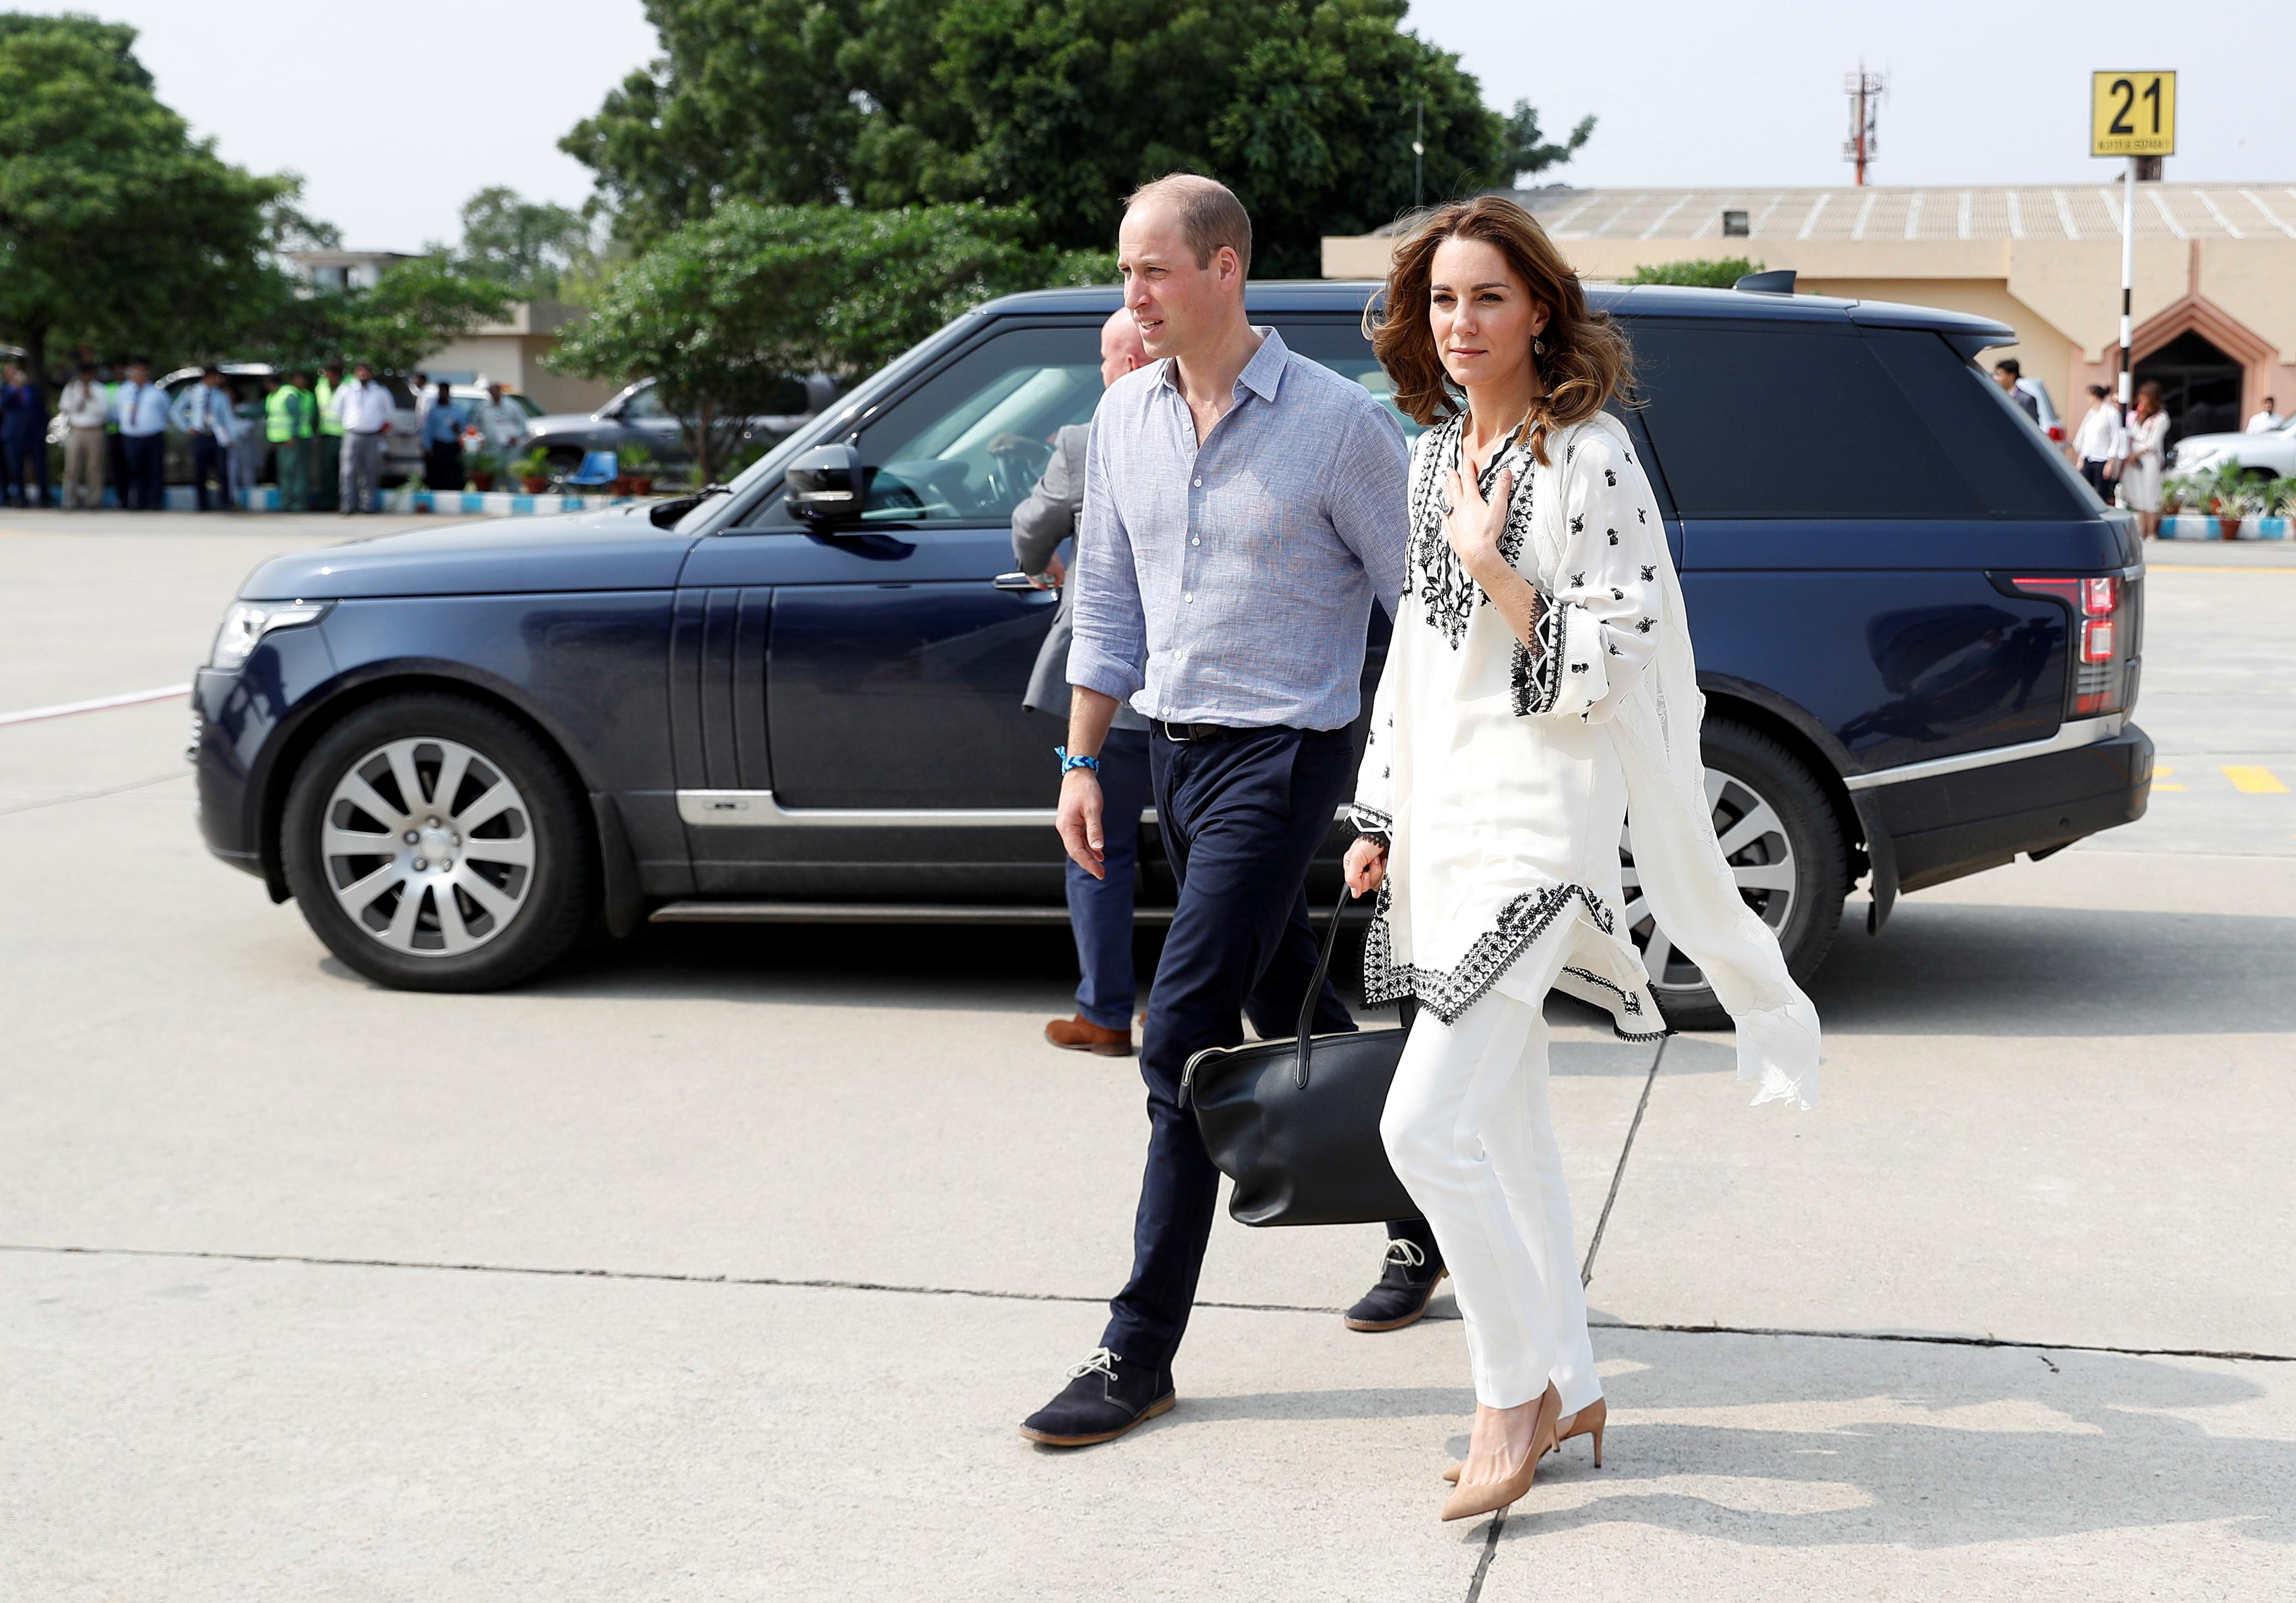 Prince William and wife Kate land in Pakistan capital after aborted...